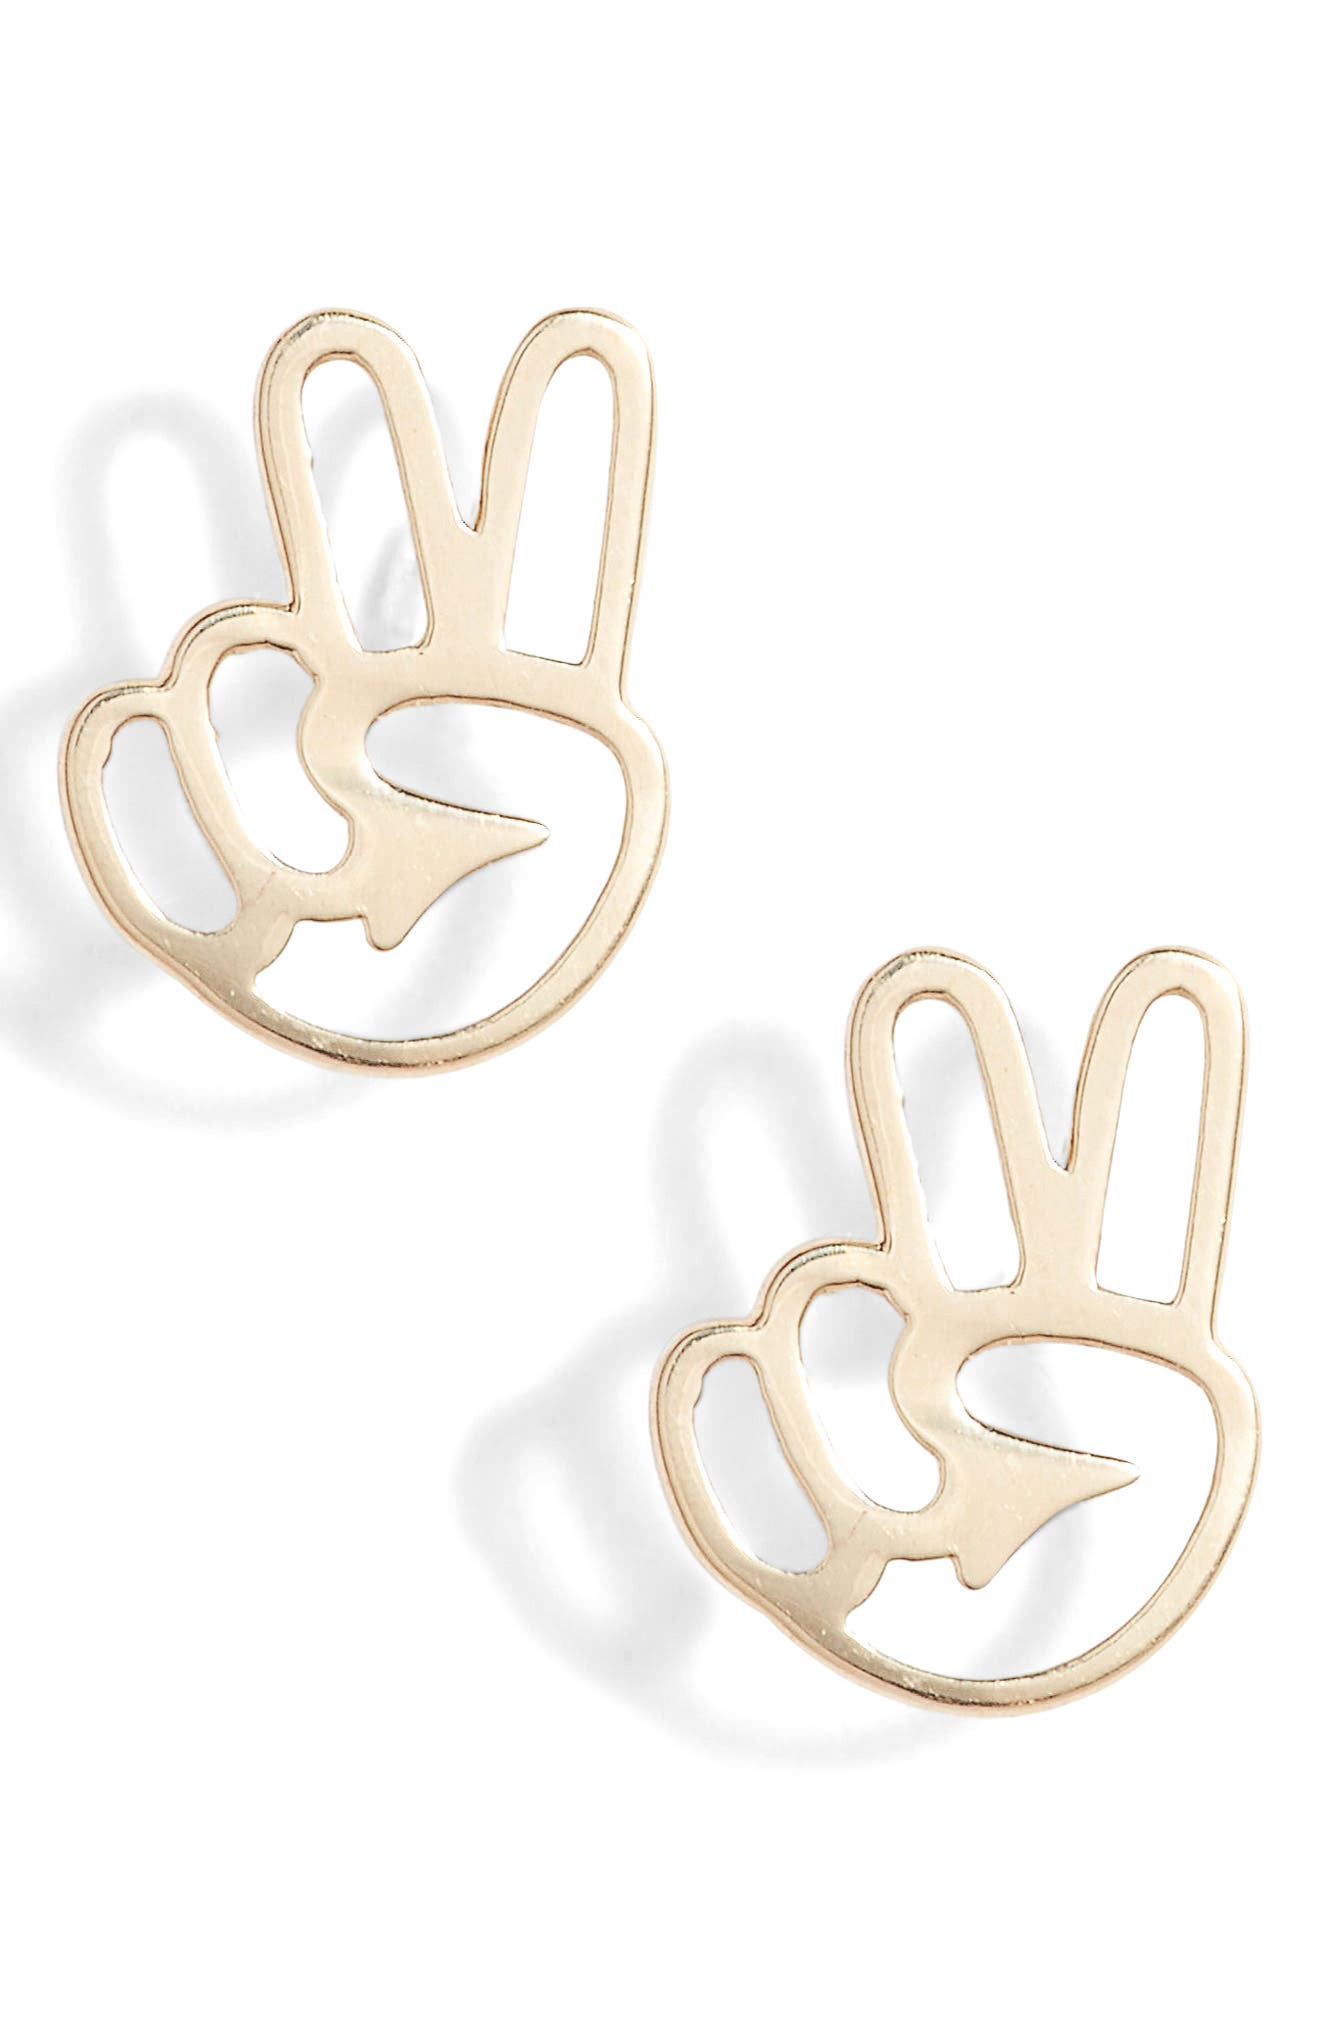 Peace Out Stud Earrings,                             Main thumbnail 1, color,                             Yellow Gold